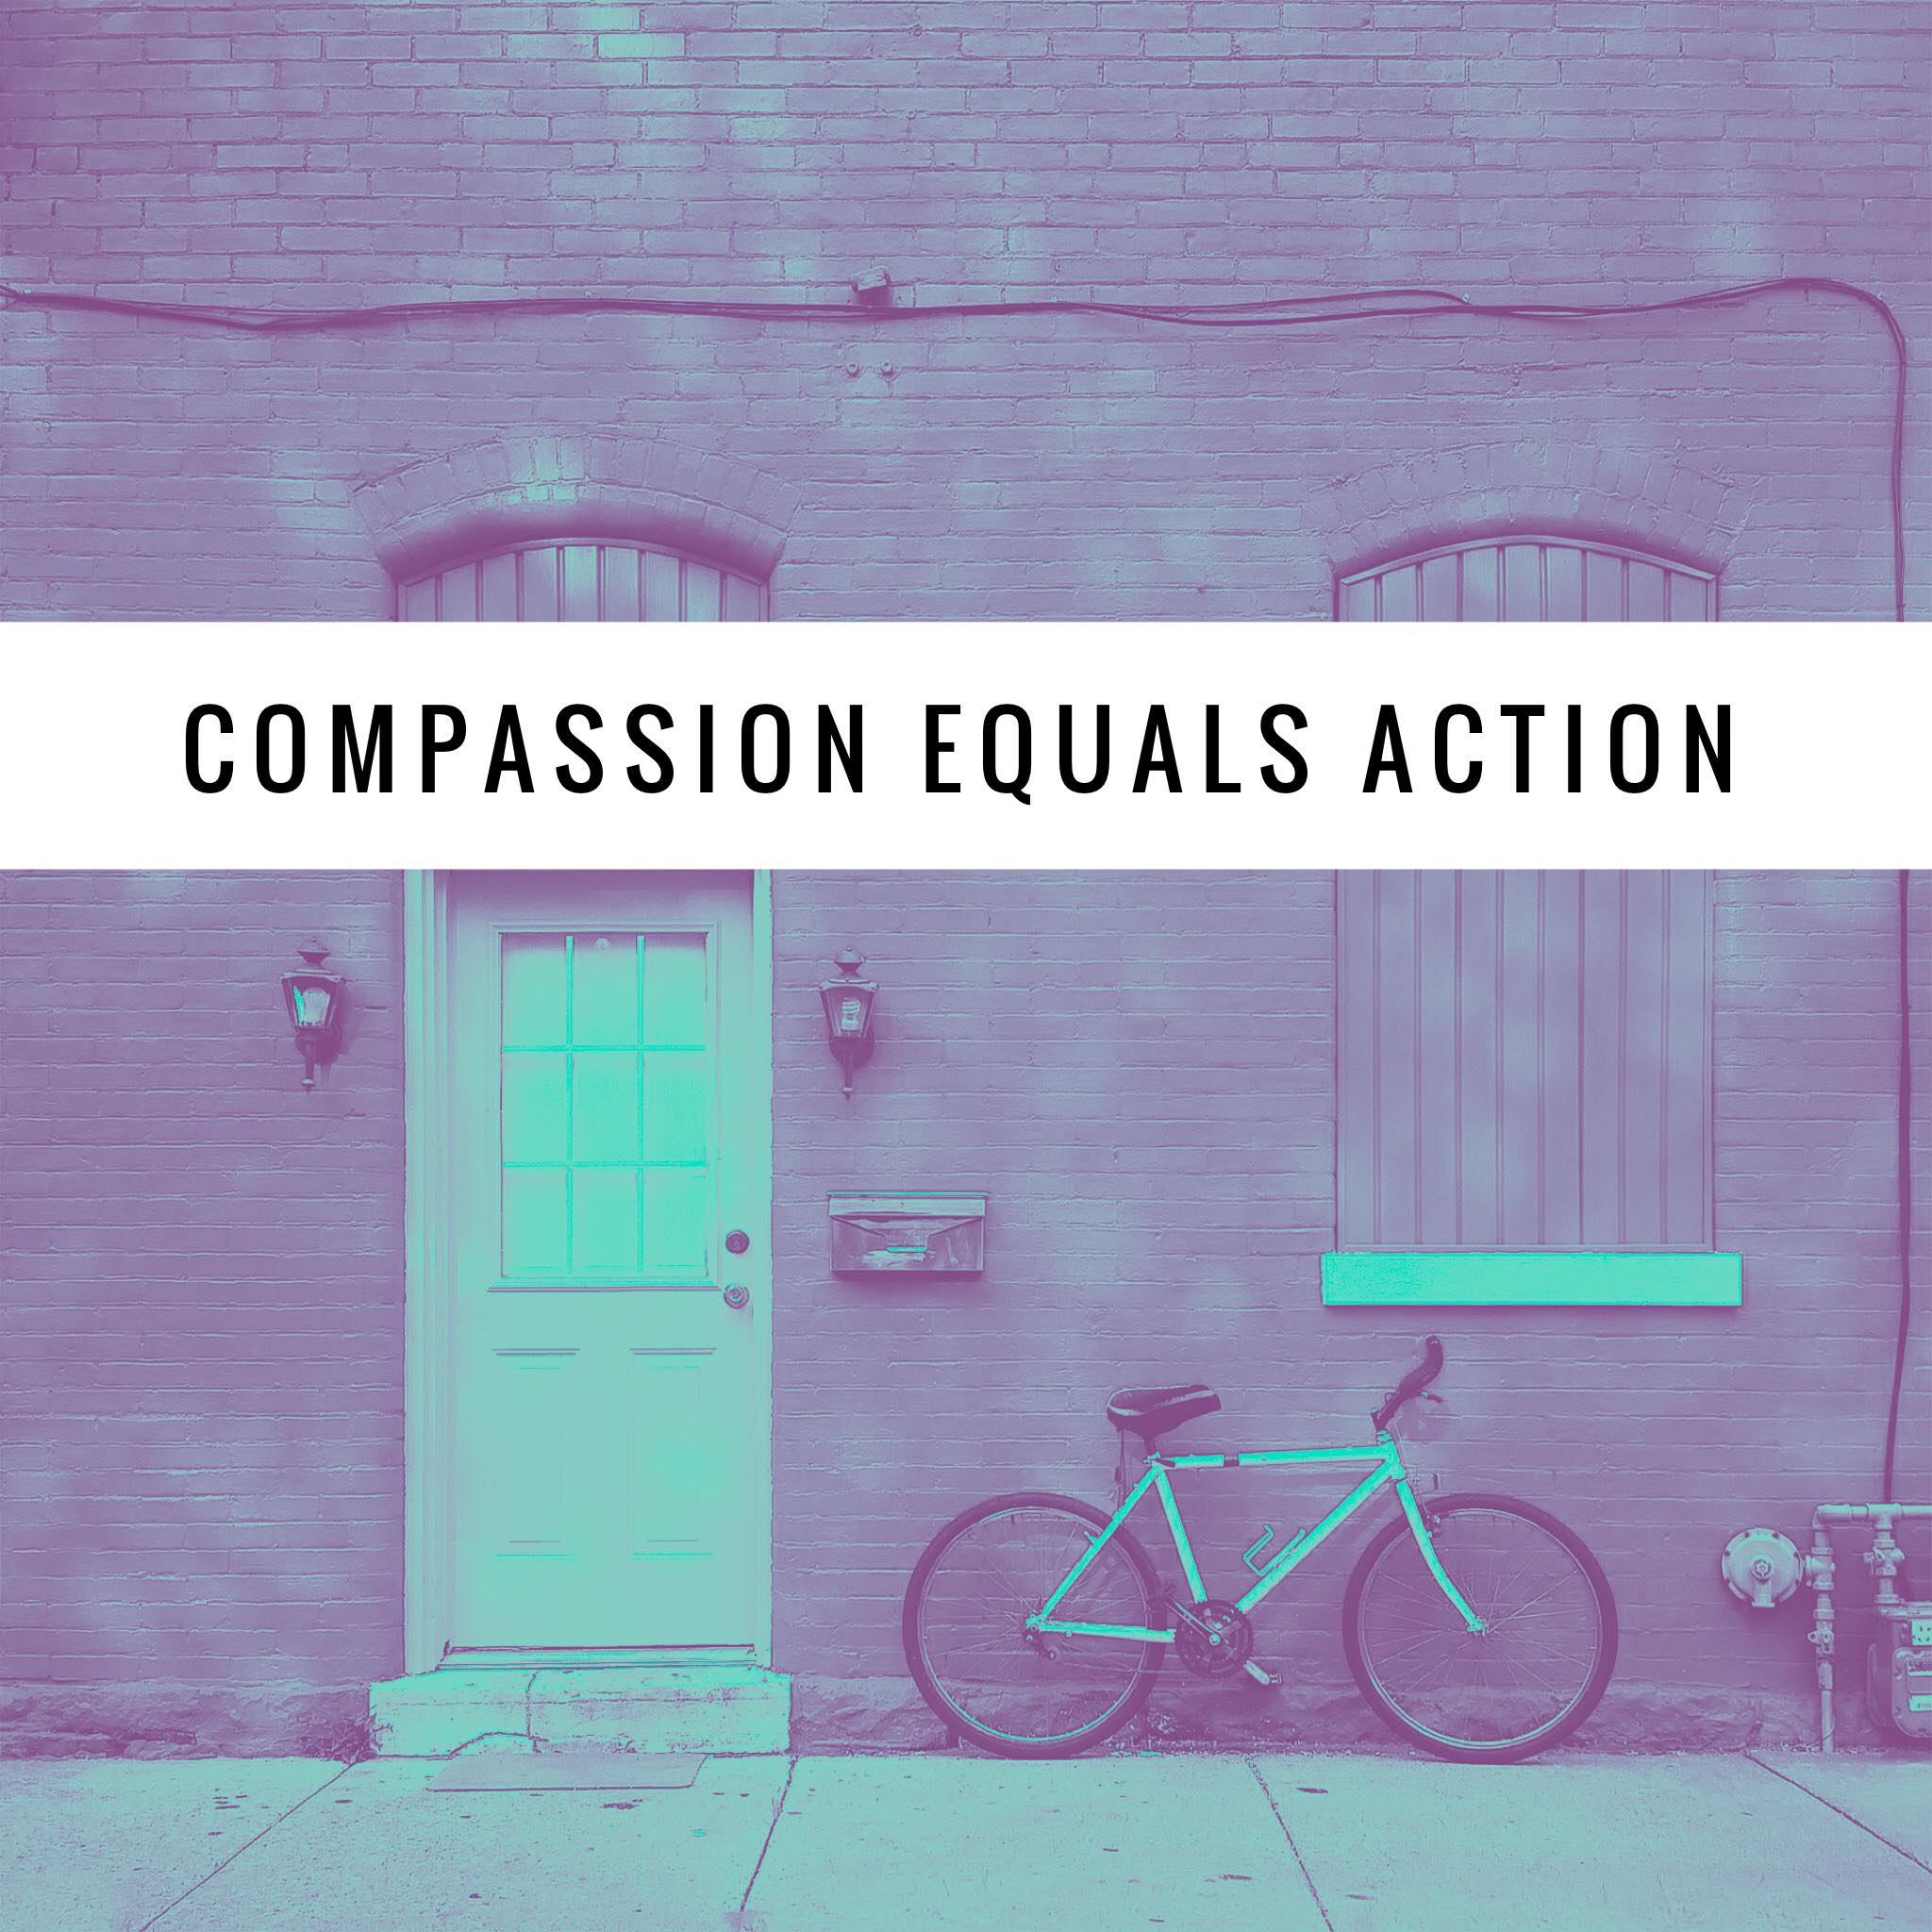 Compassion Equals Action